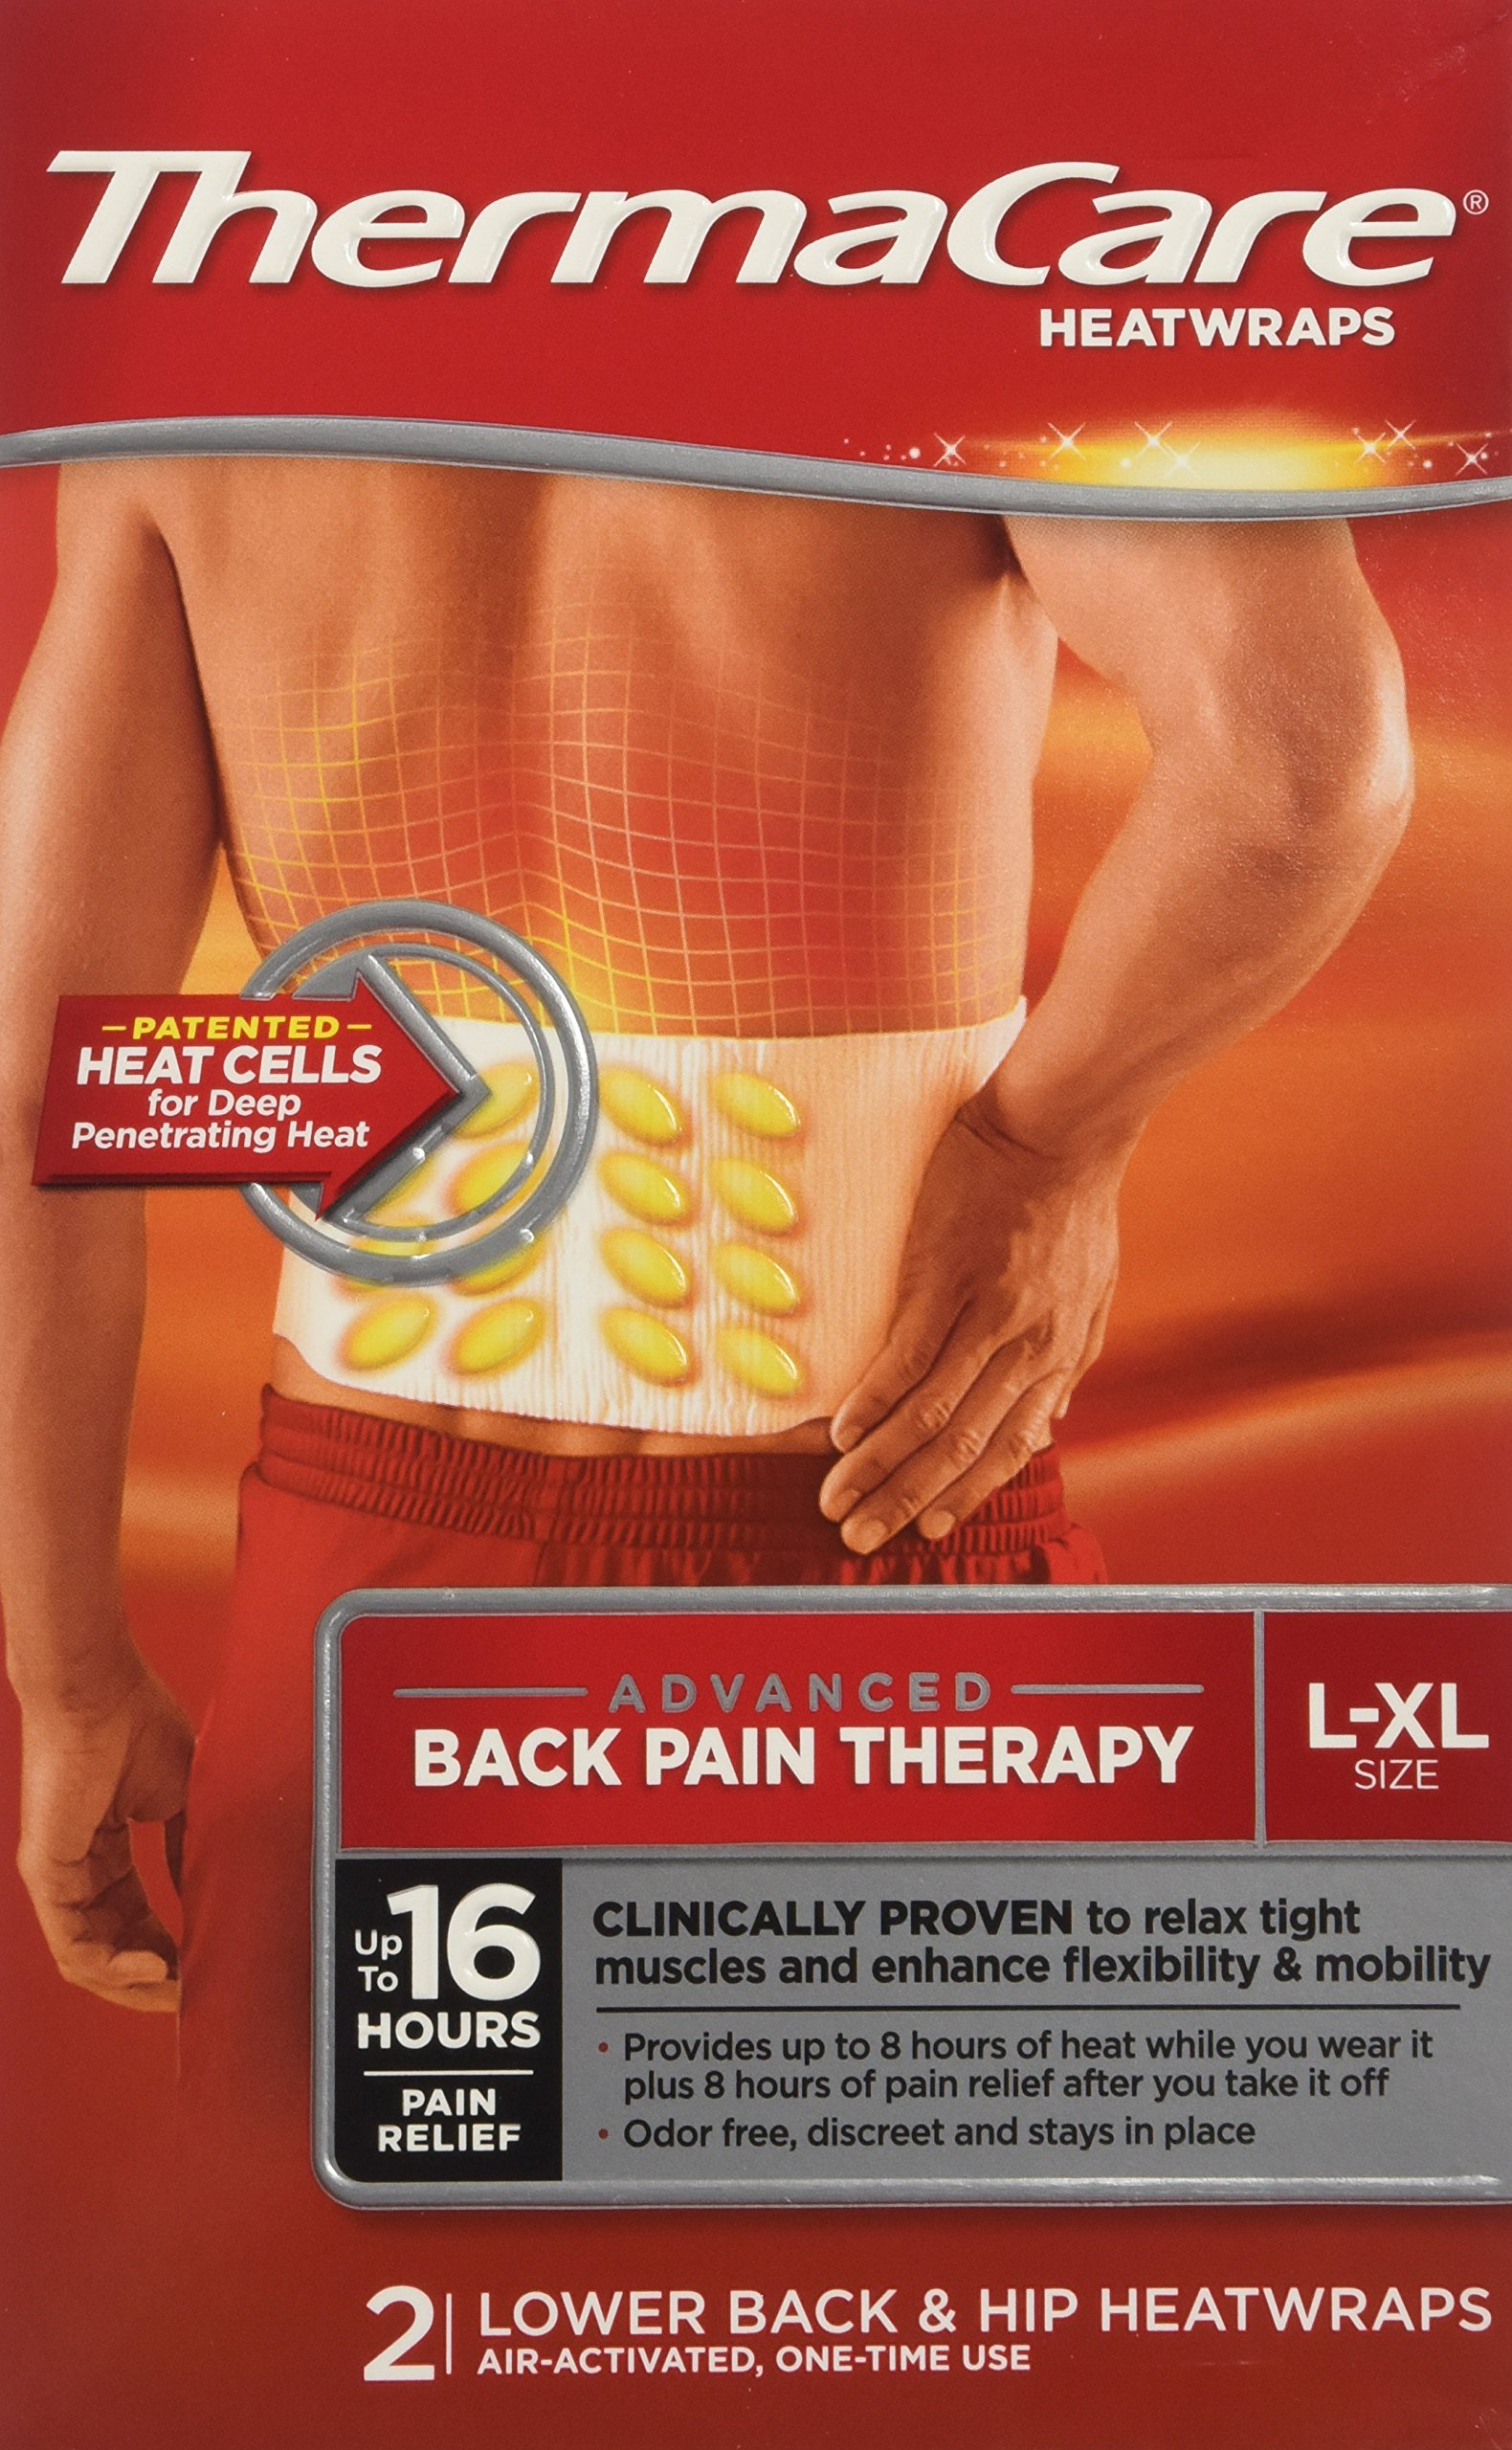 ThermaCare Lower Back & Hip Heat Wraps, Large-XL, Pack of 12 (Packaging May Vary)